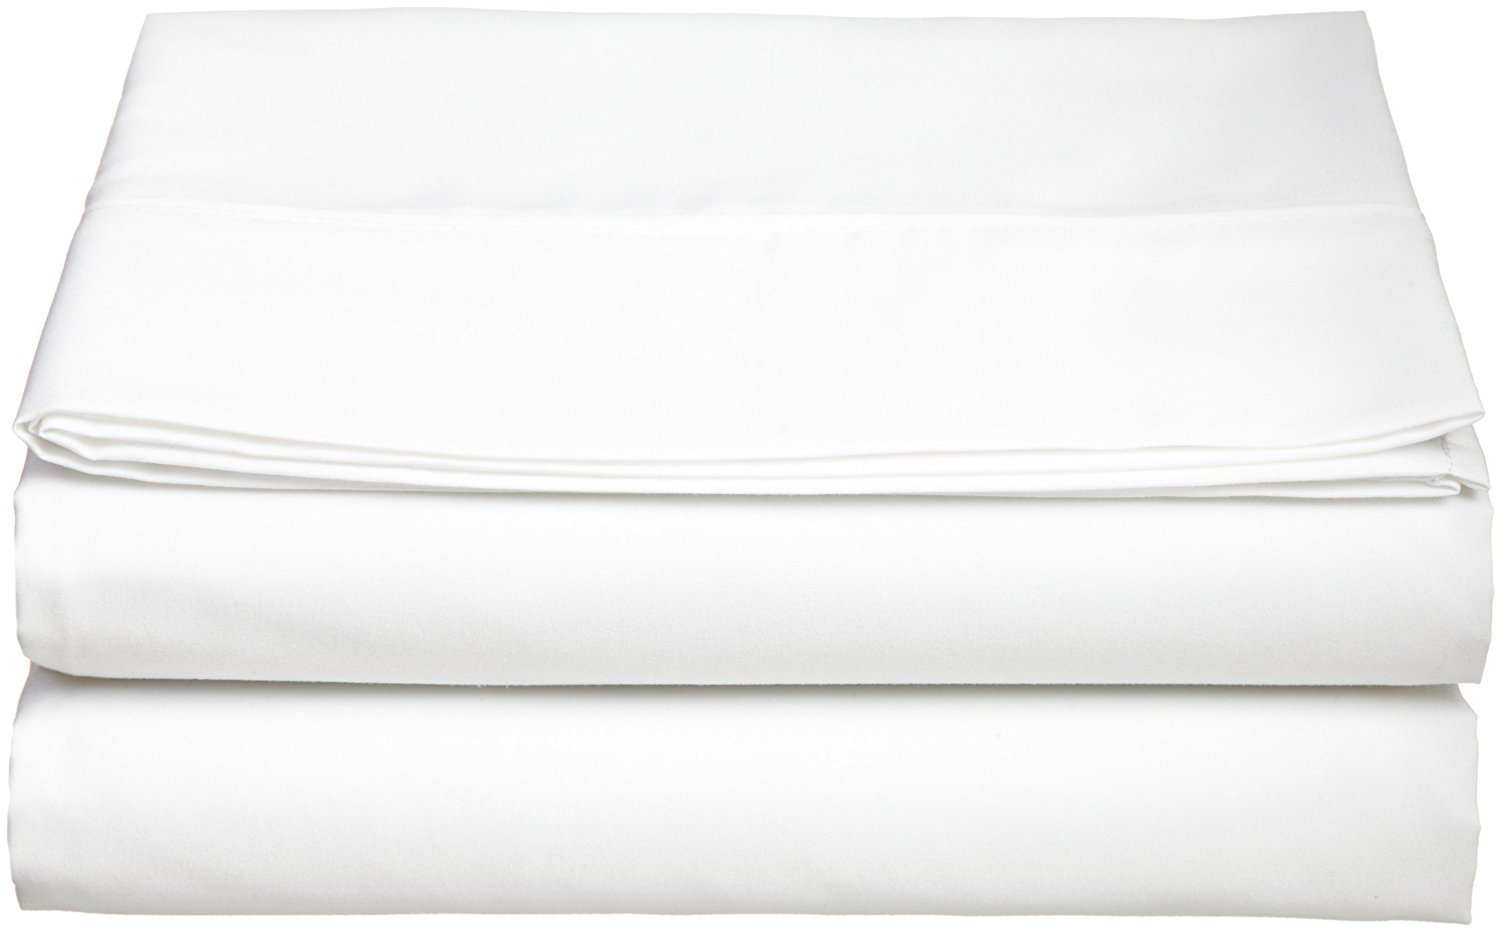 Twin/Full/Queen/King/Cal King Size Flat Sheet Double Brushed Microfiber Top Sheet Only - Soft, Hypoallergenic, Wrinkle, Fade, and Stain Resistant Alberd